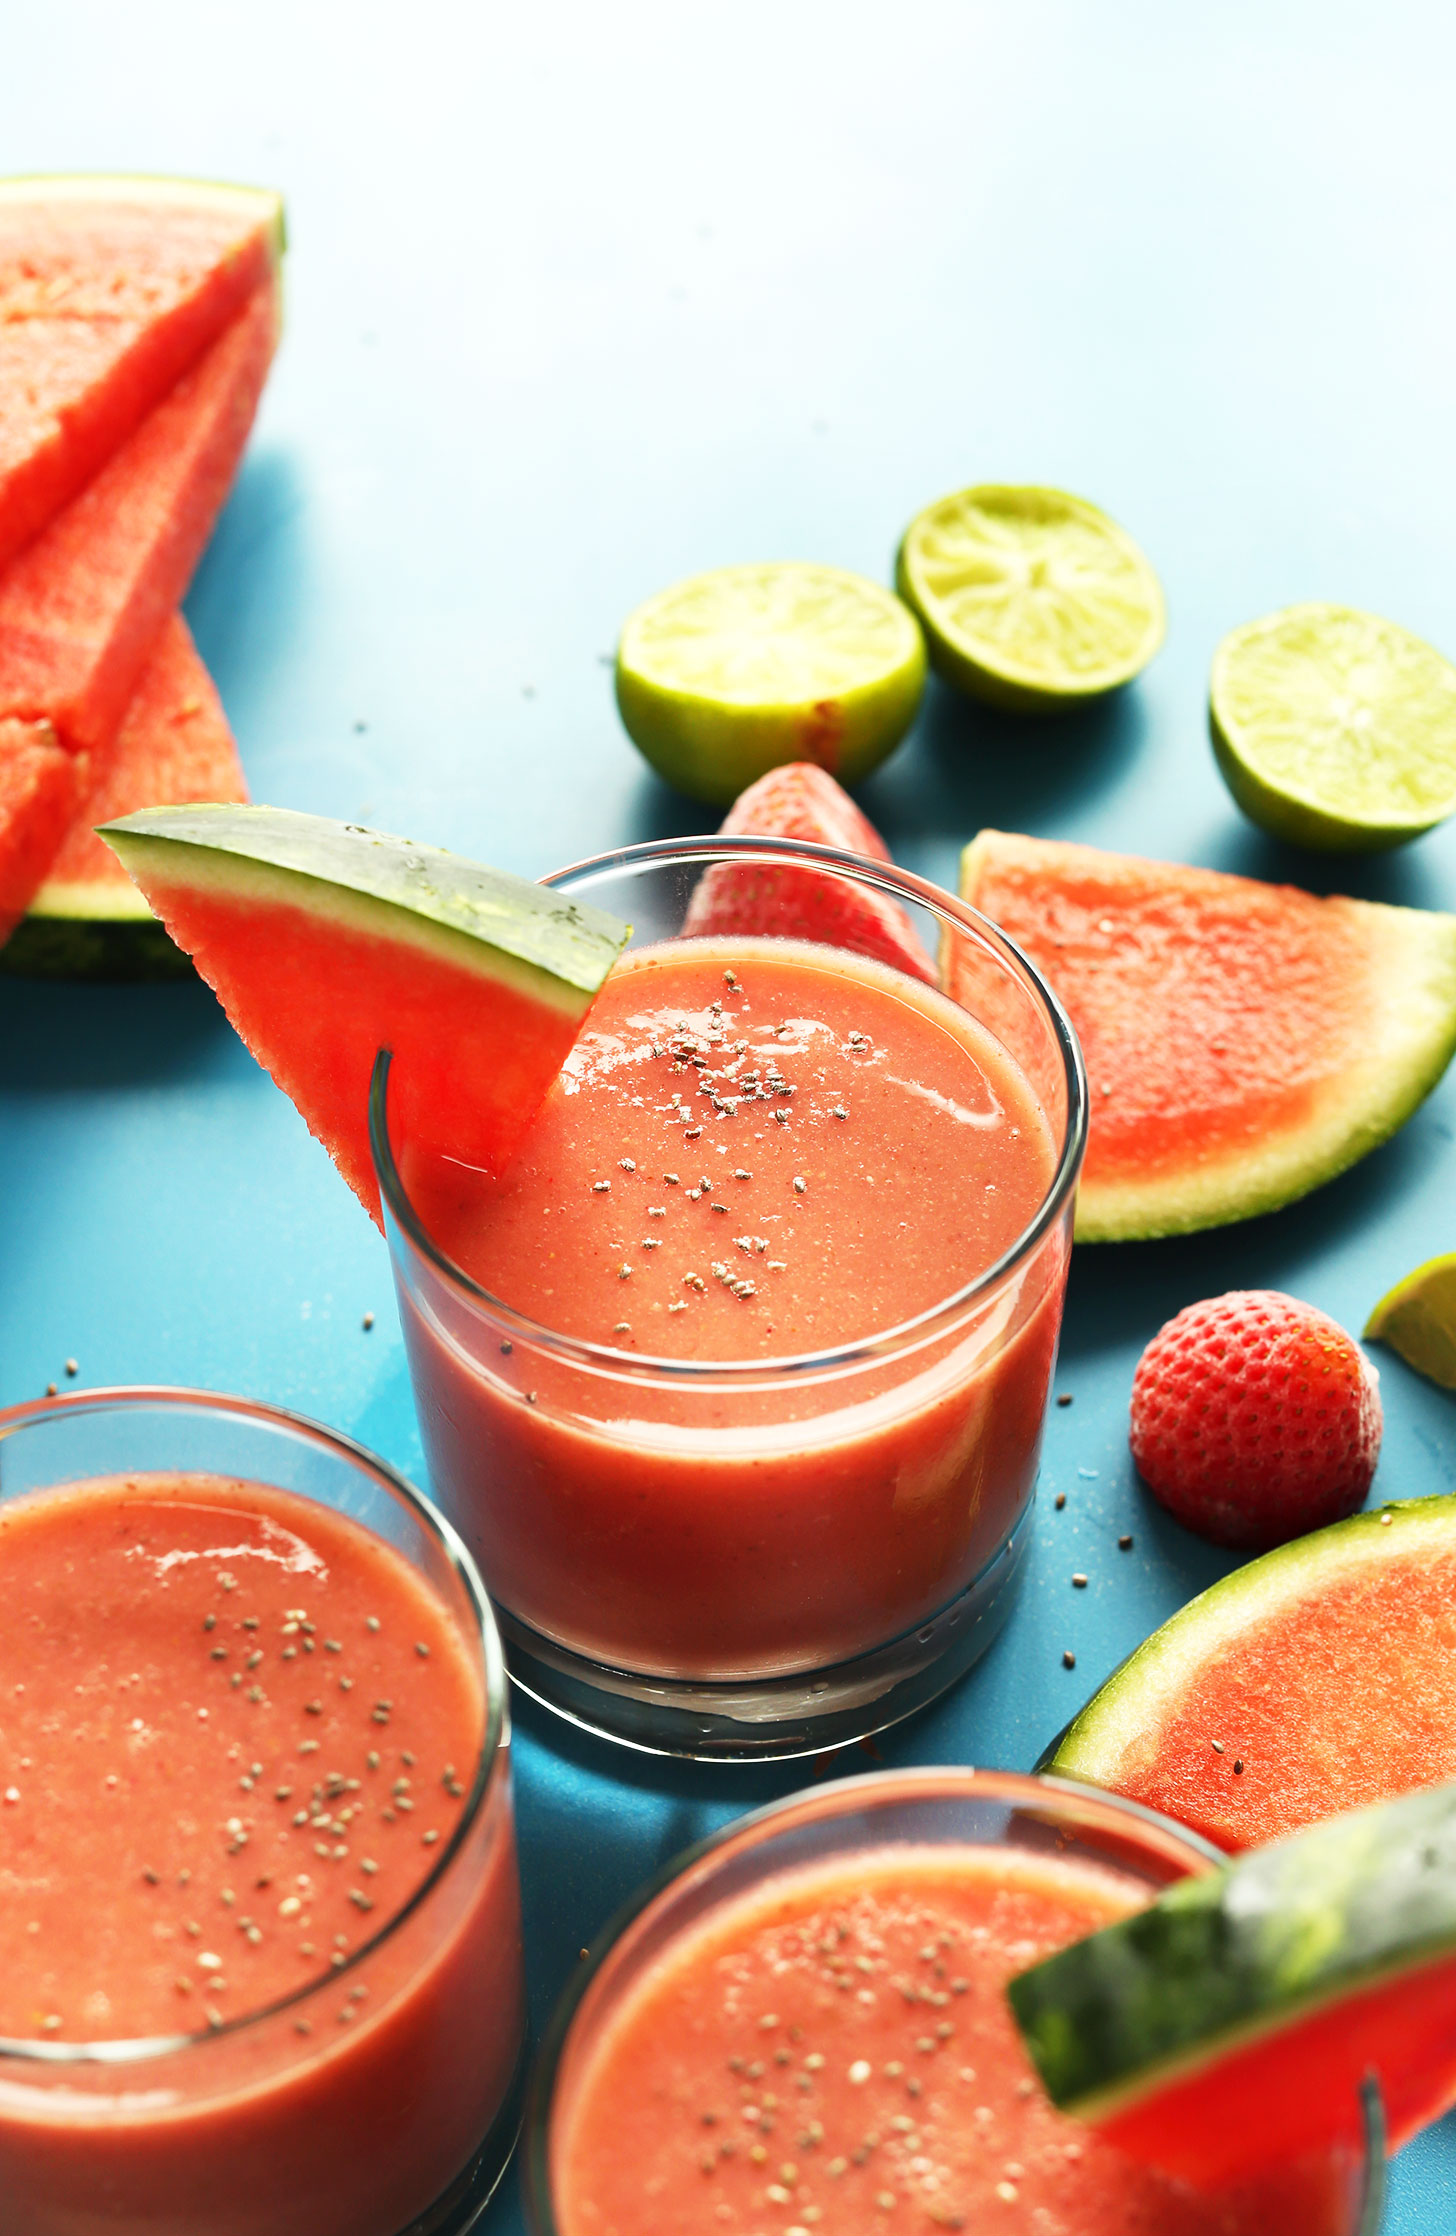 7 Watermelon Smoothie Recipes That Taste Incredible